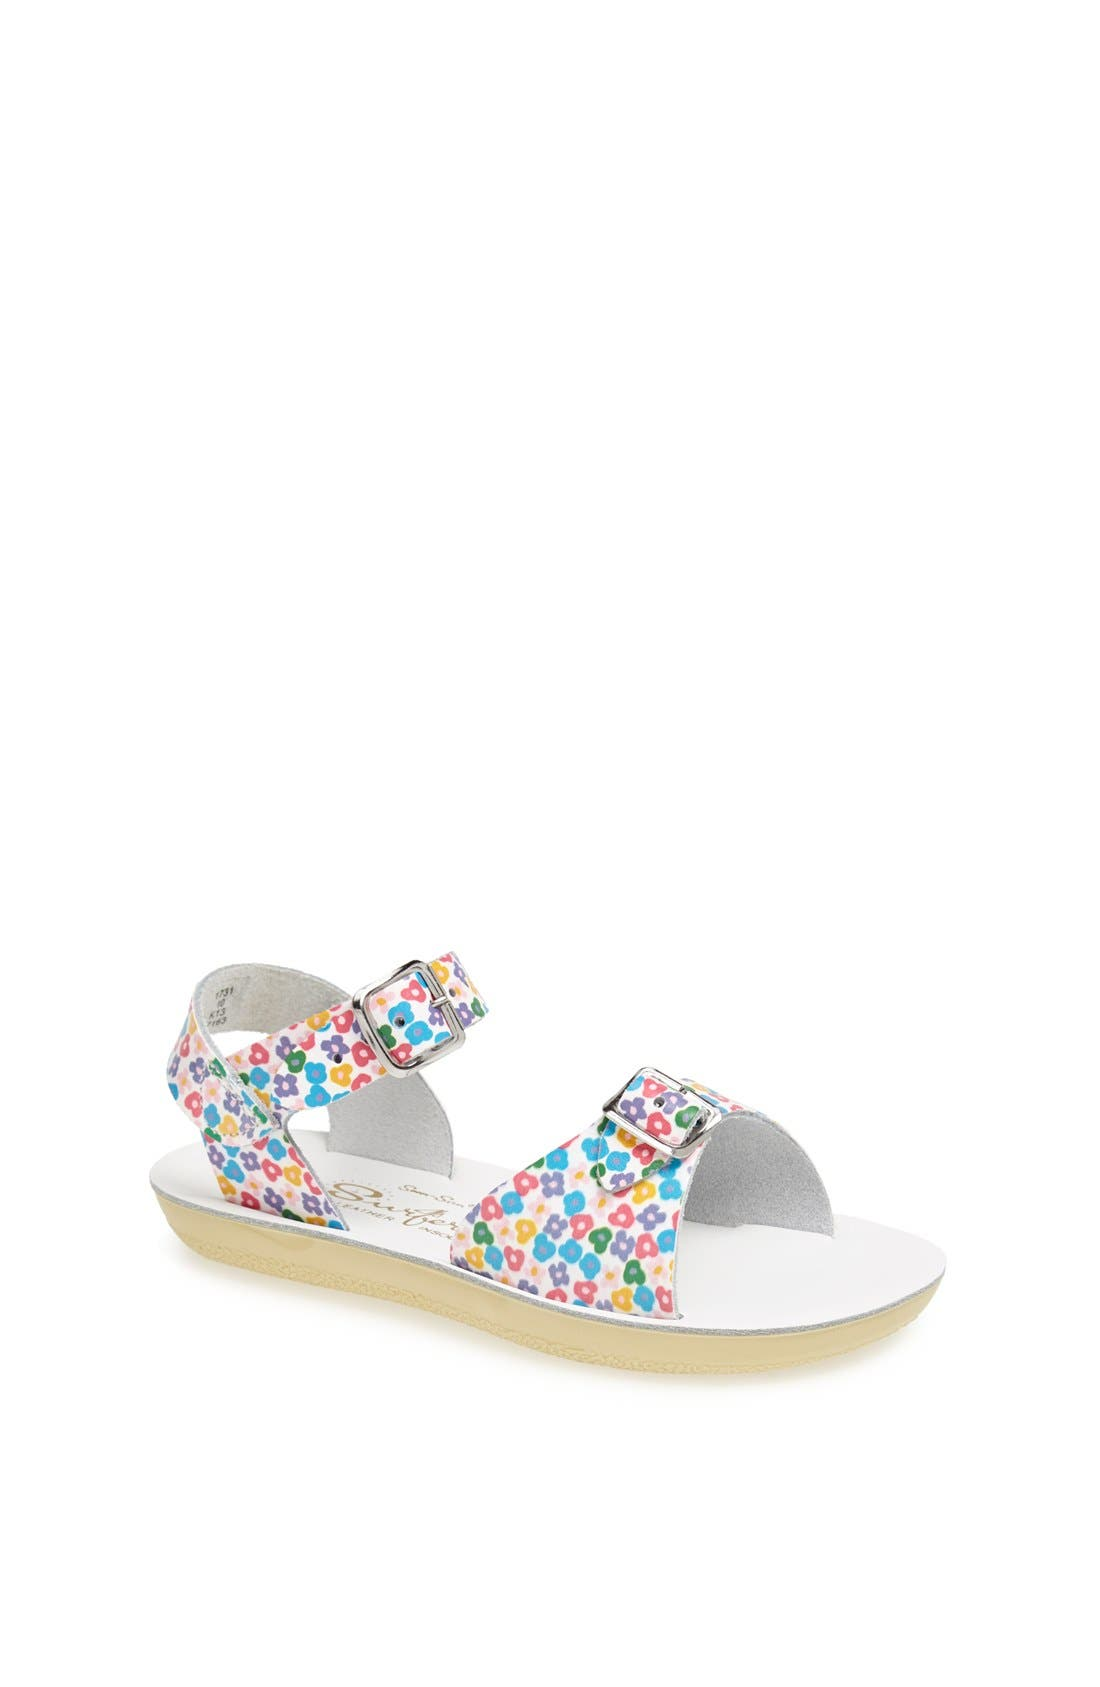 Salt Water Sandals by Hoy Shoe Company 'Floral Surfer' Sandal (Toddler)